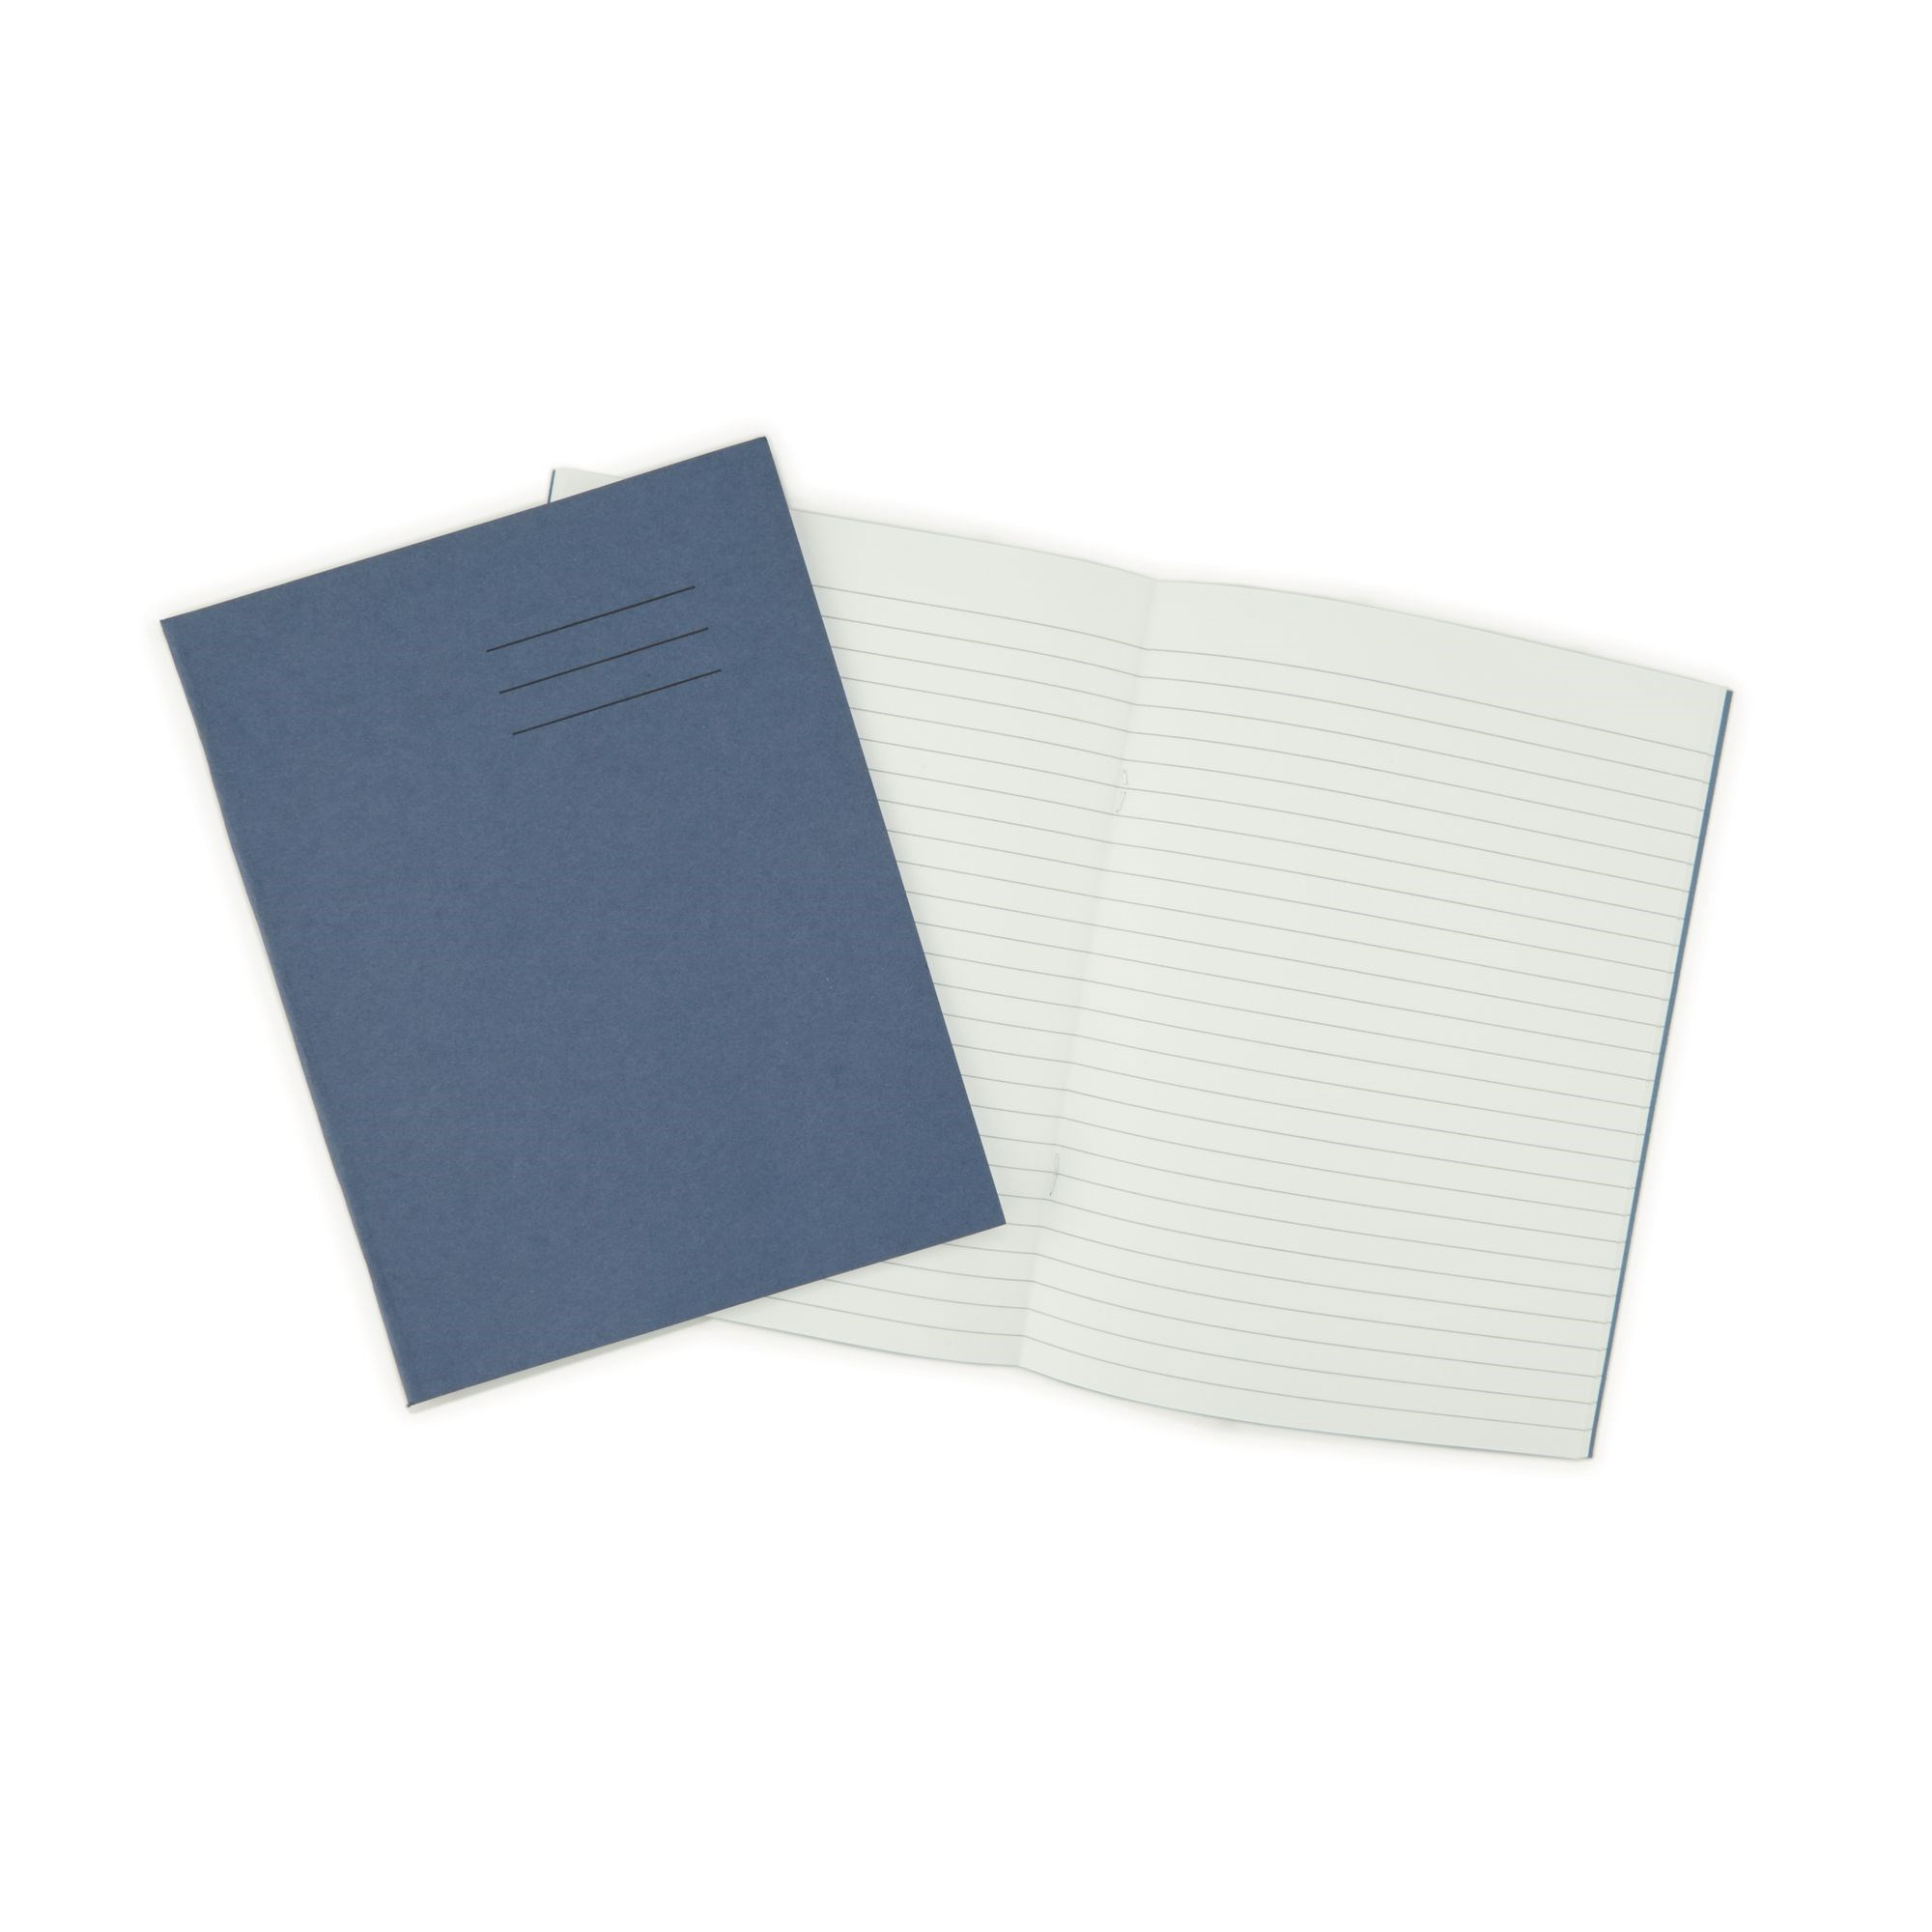 Classmates Dark Blue 229 x 178mm General Workbook 96 Pages 8mm Ruled (Pack of 50)